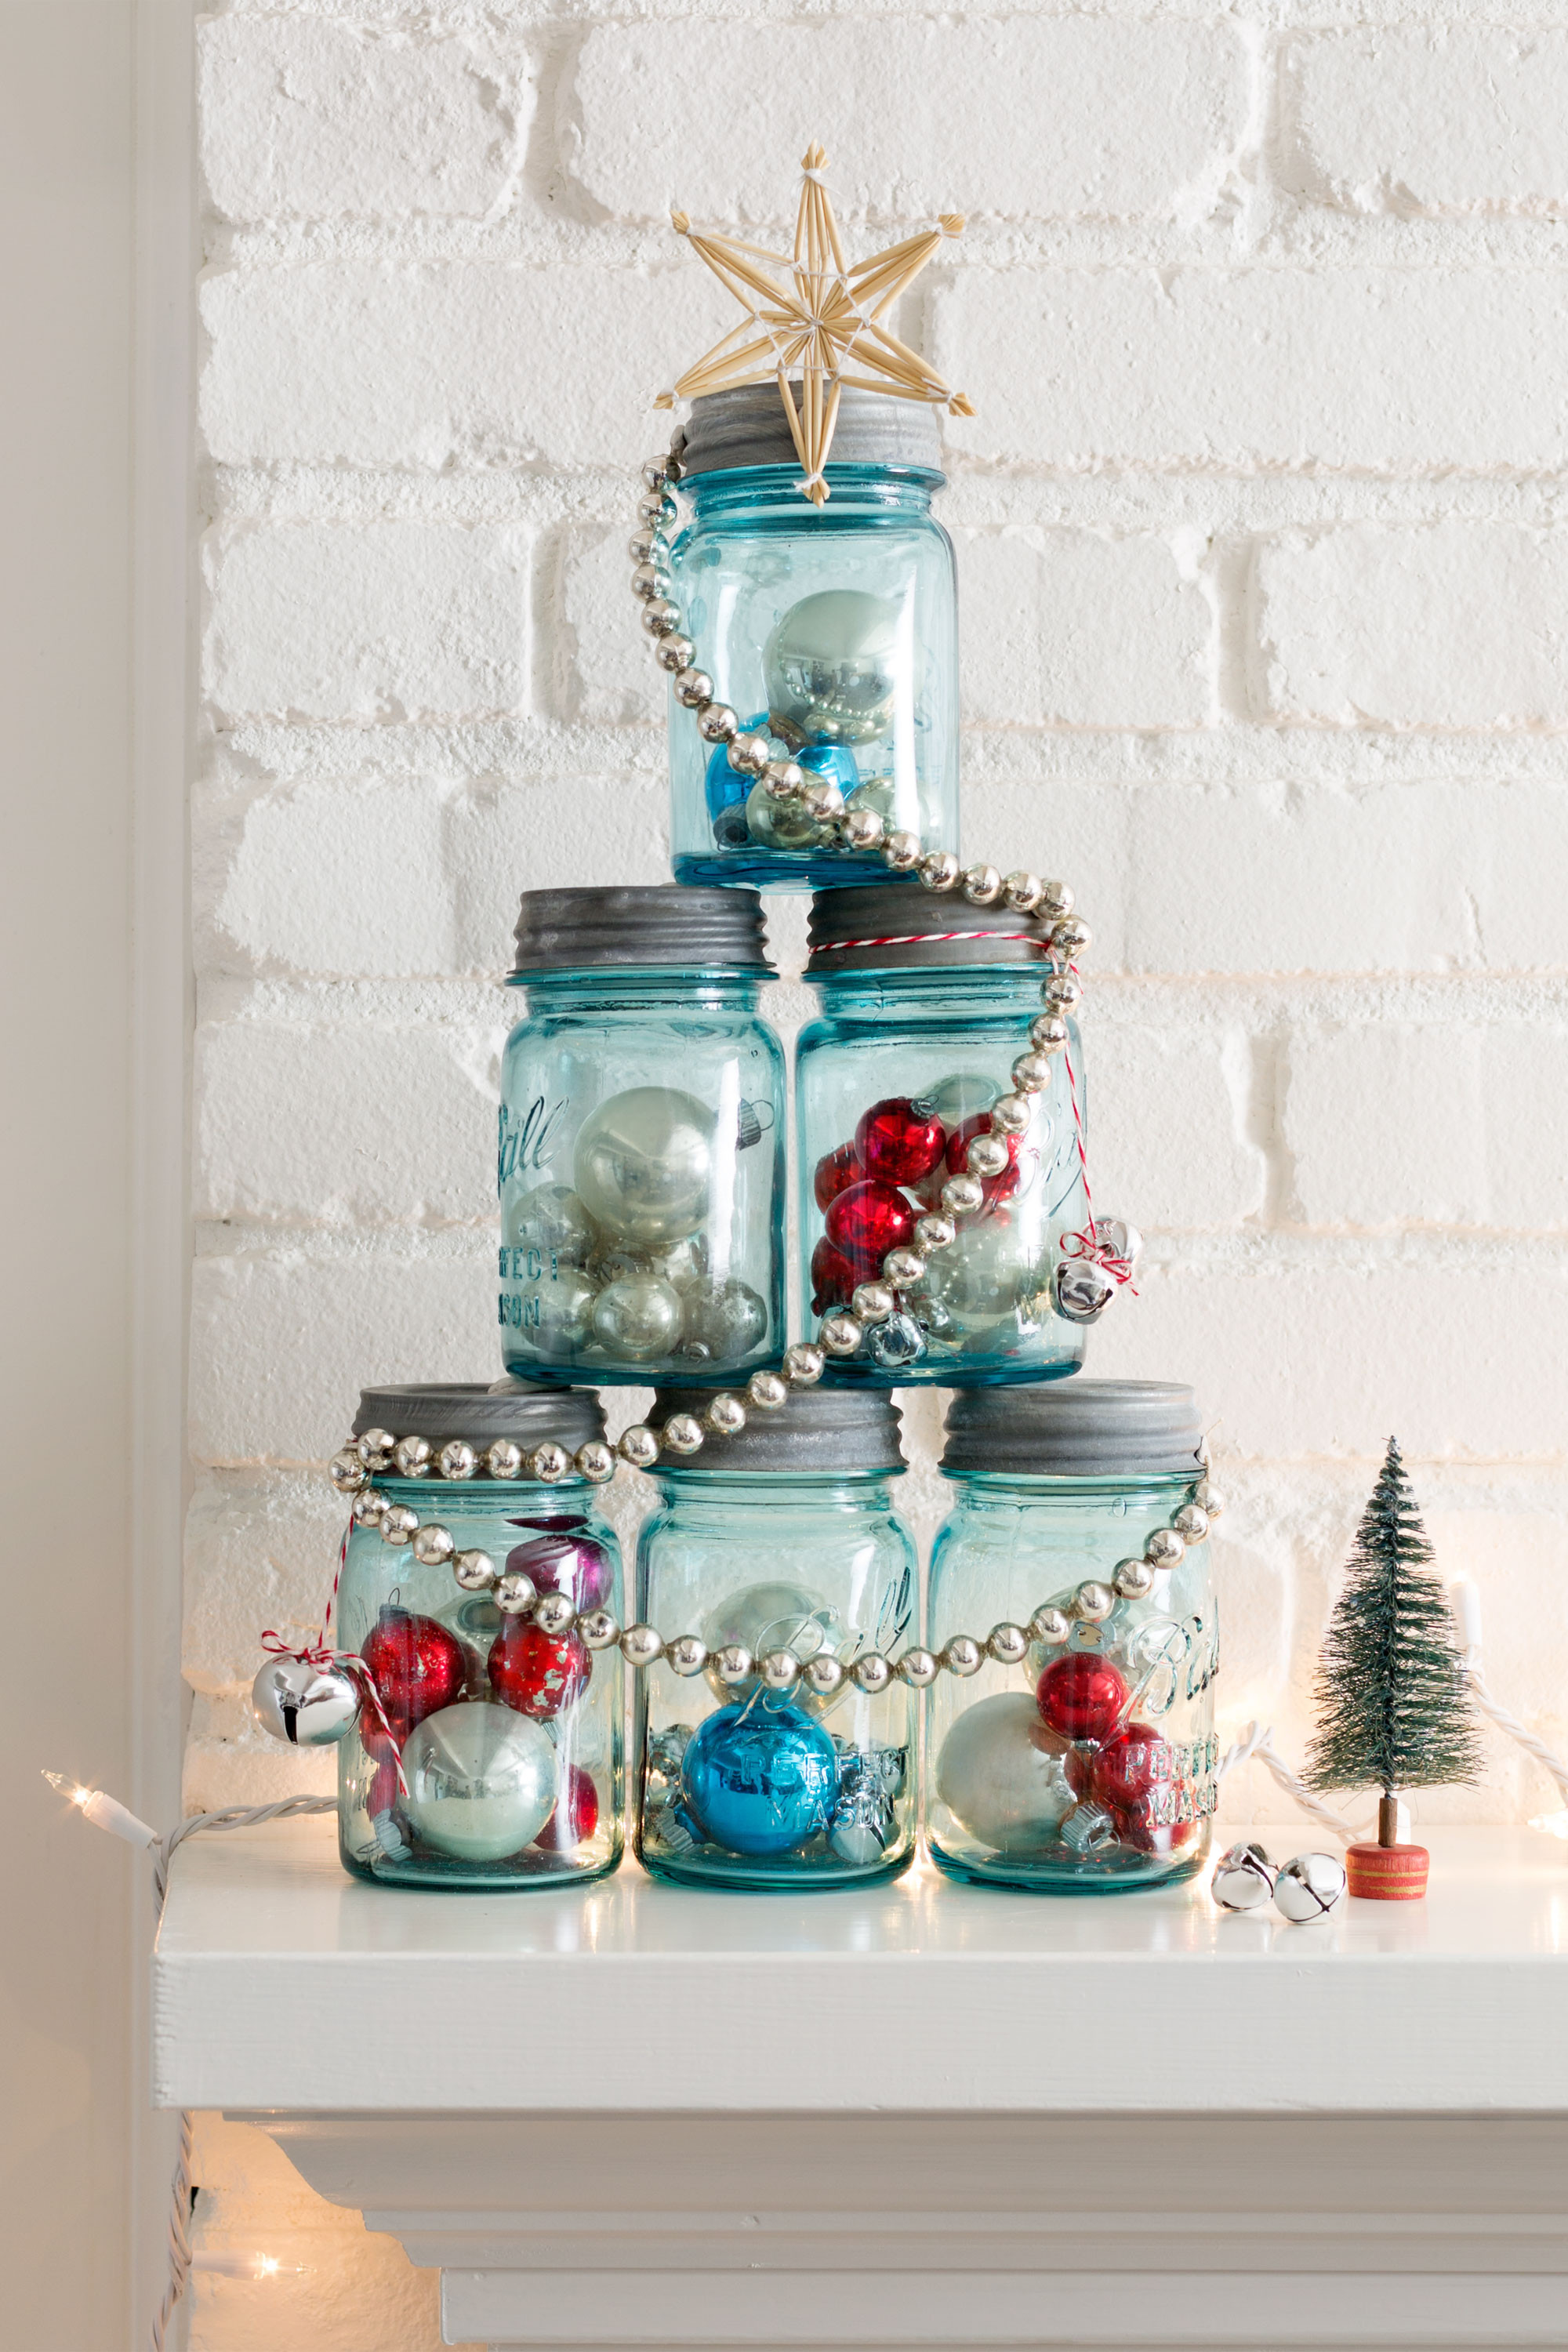 Best ideas about DIY Christmas Lights . Save or Pin 37 DIY Homemade Christmas Decorations Christmas Decor Now.